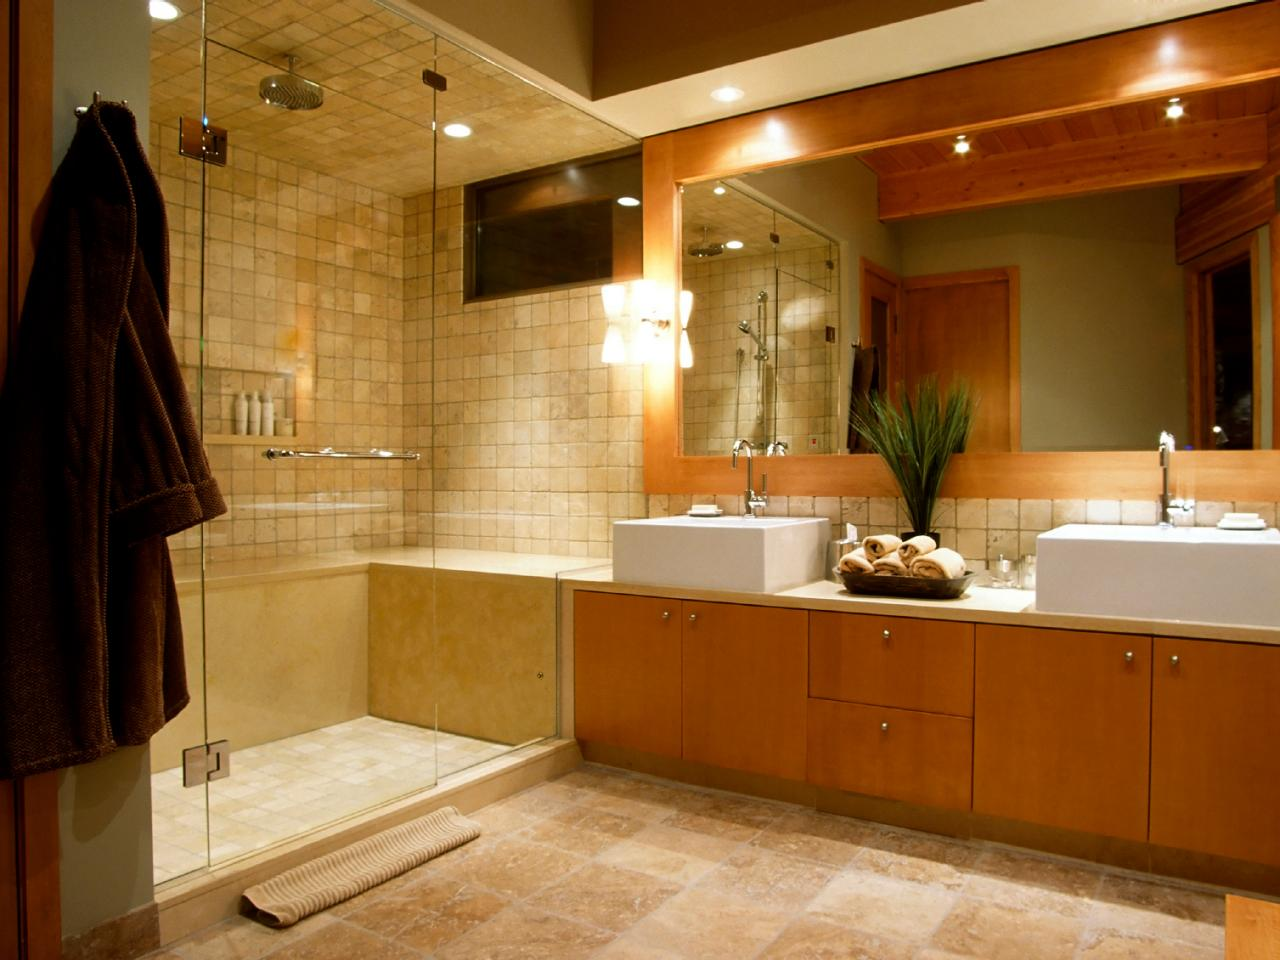 Best ways to use bathroom recessed lighting